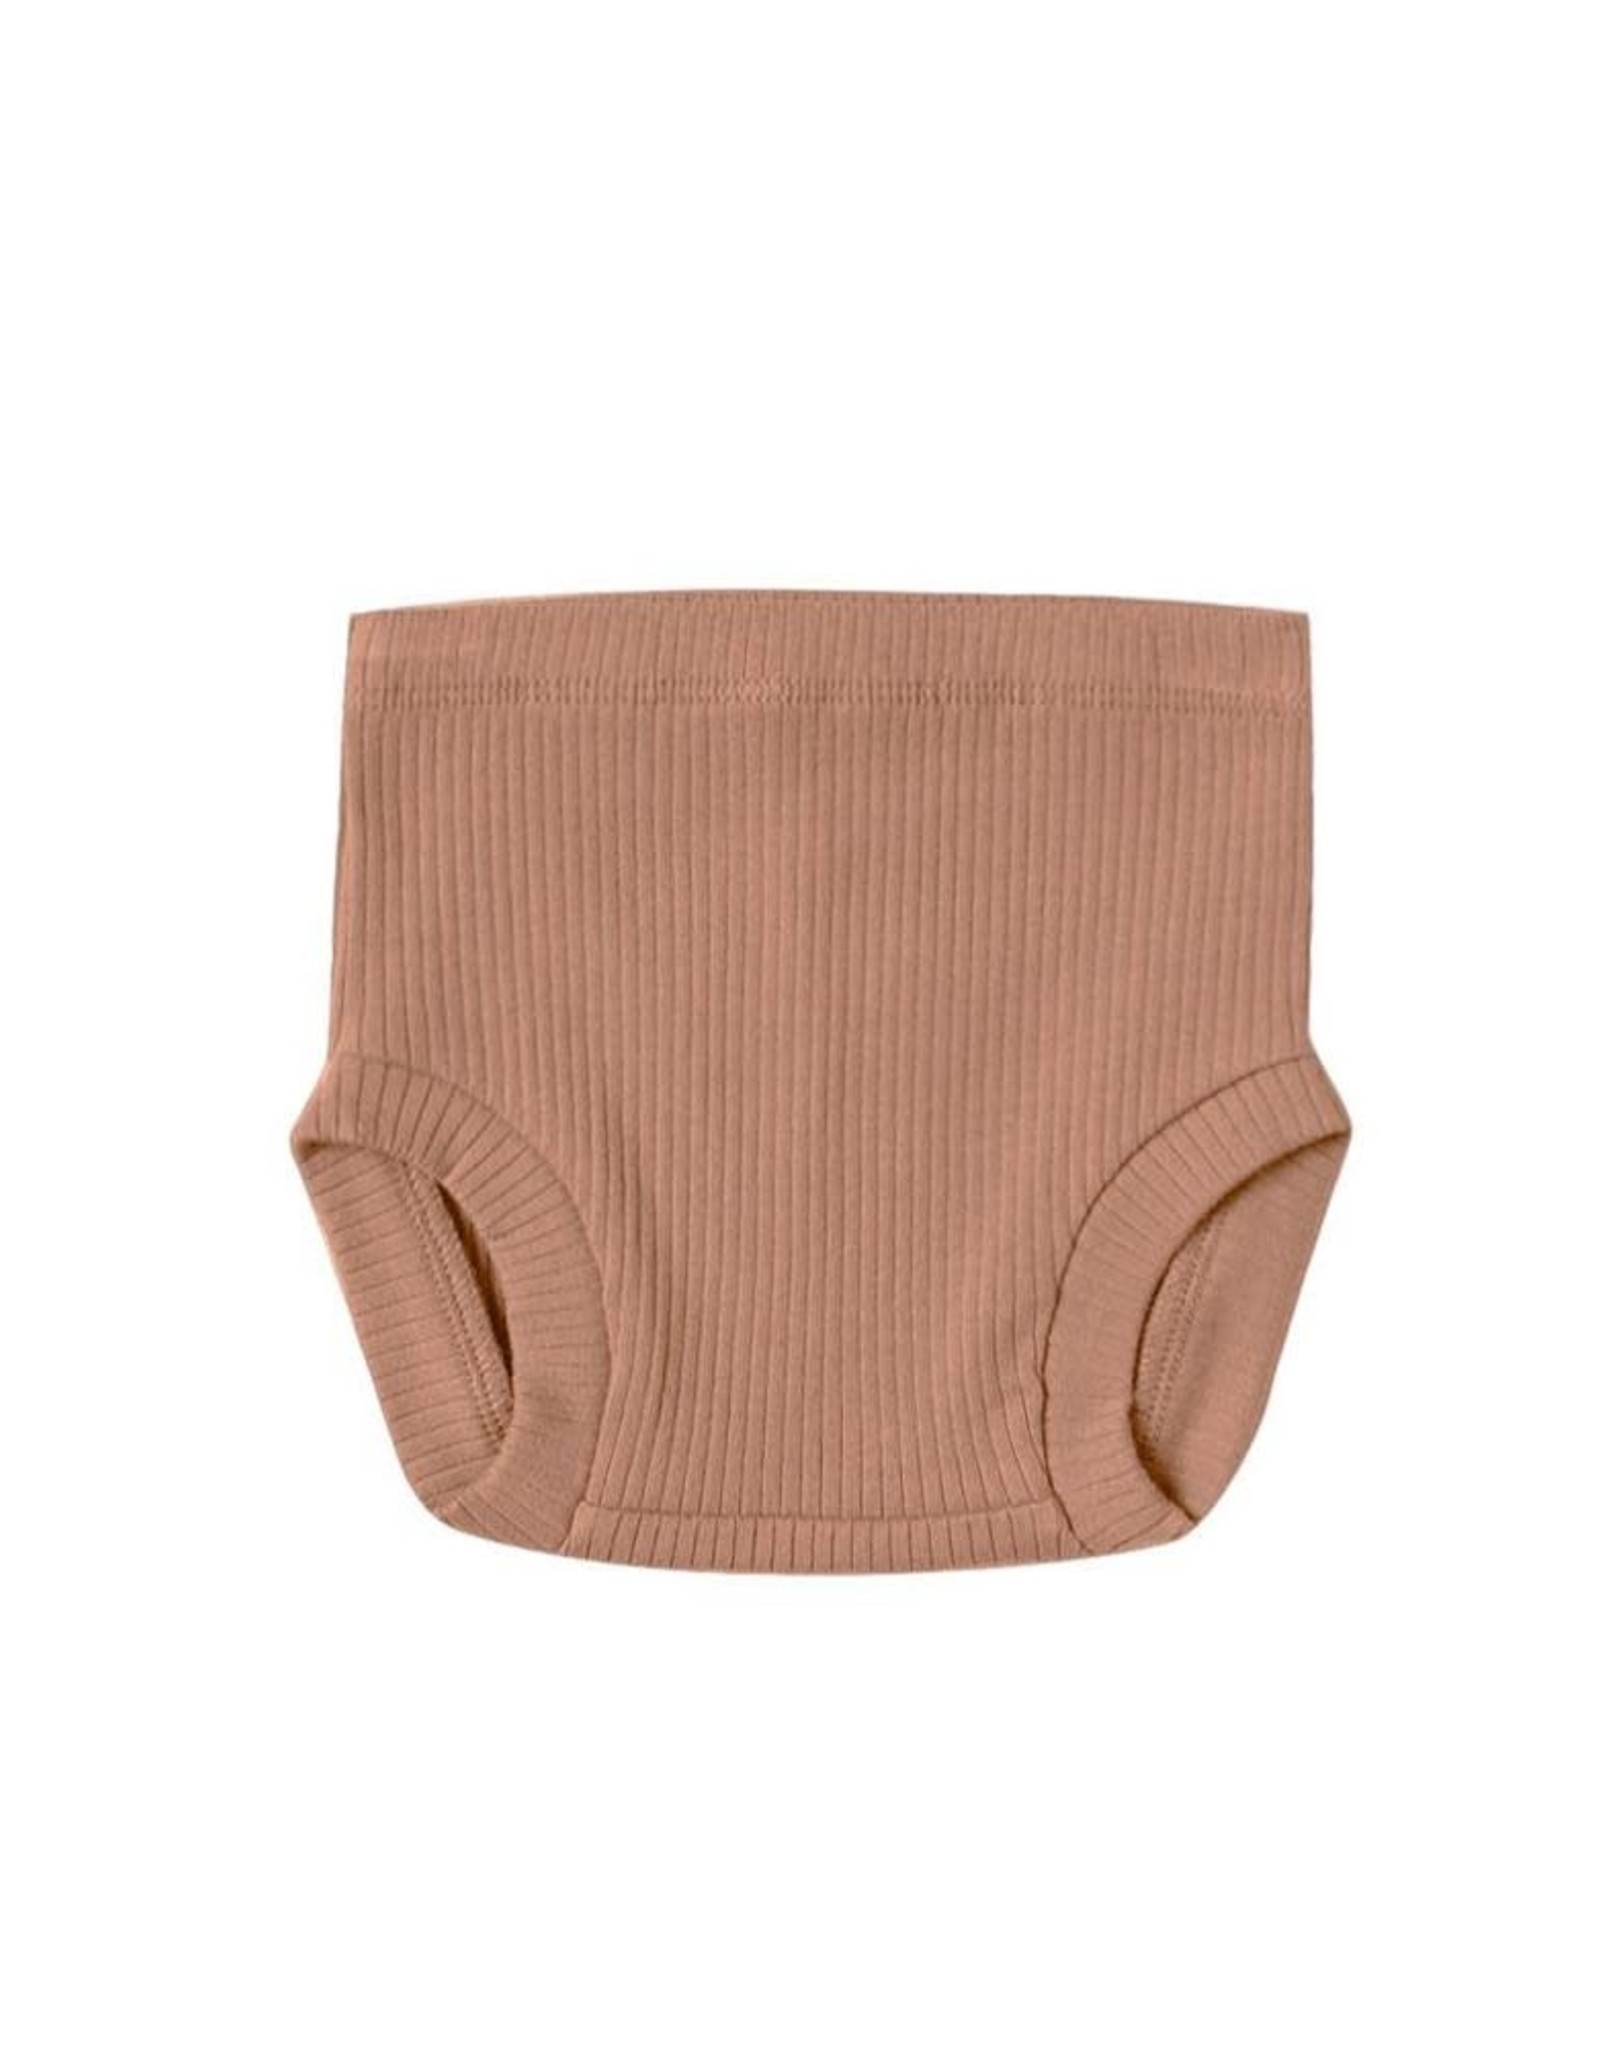 Quincy Mae Quincy Mae Ribbed Bloomer Terracota